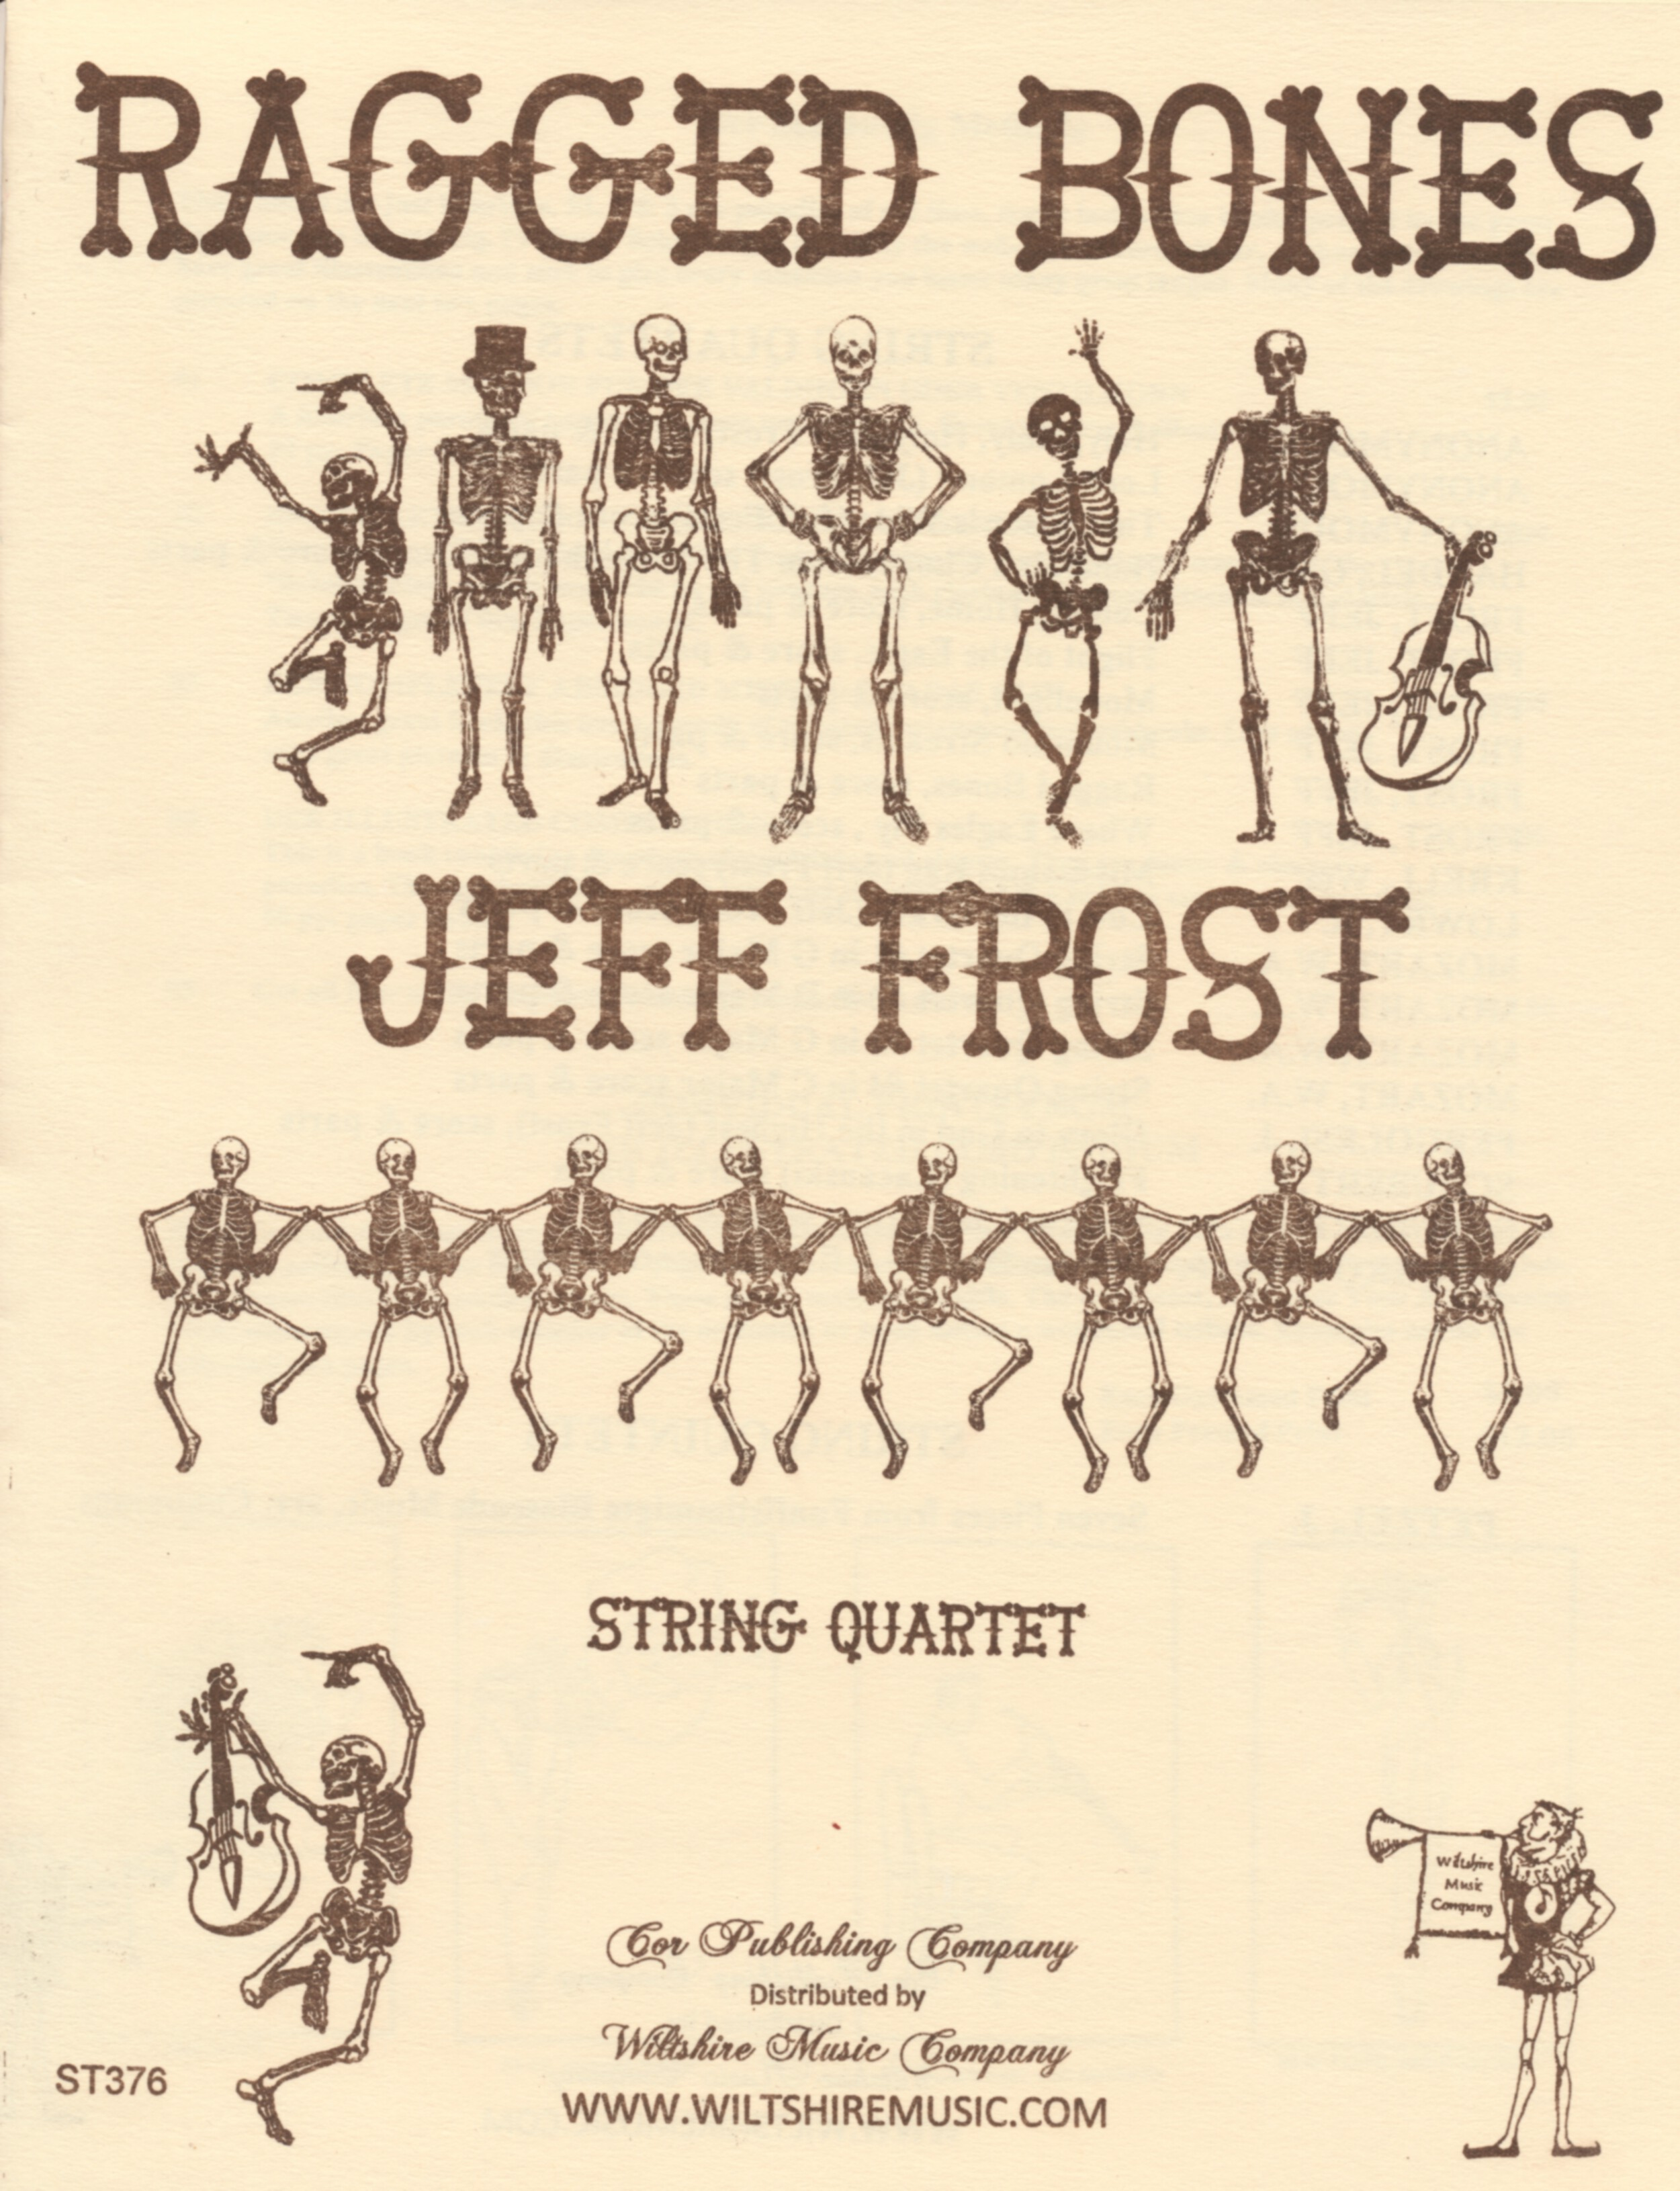 Ragged Bones, Jeff Frost